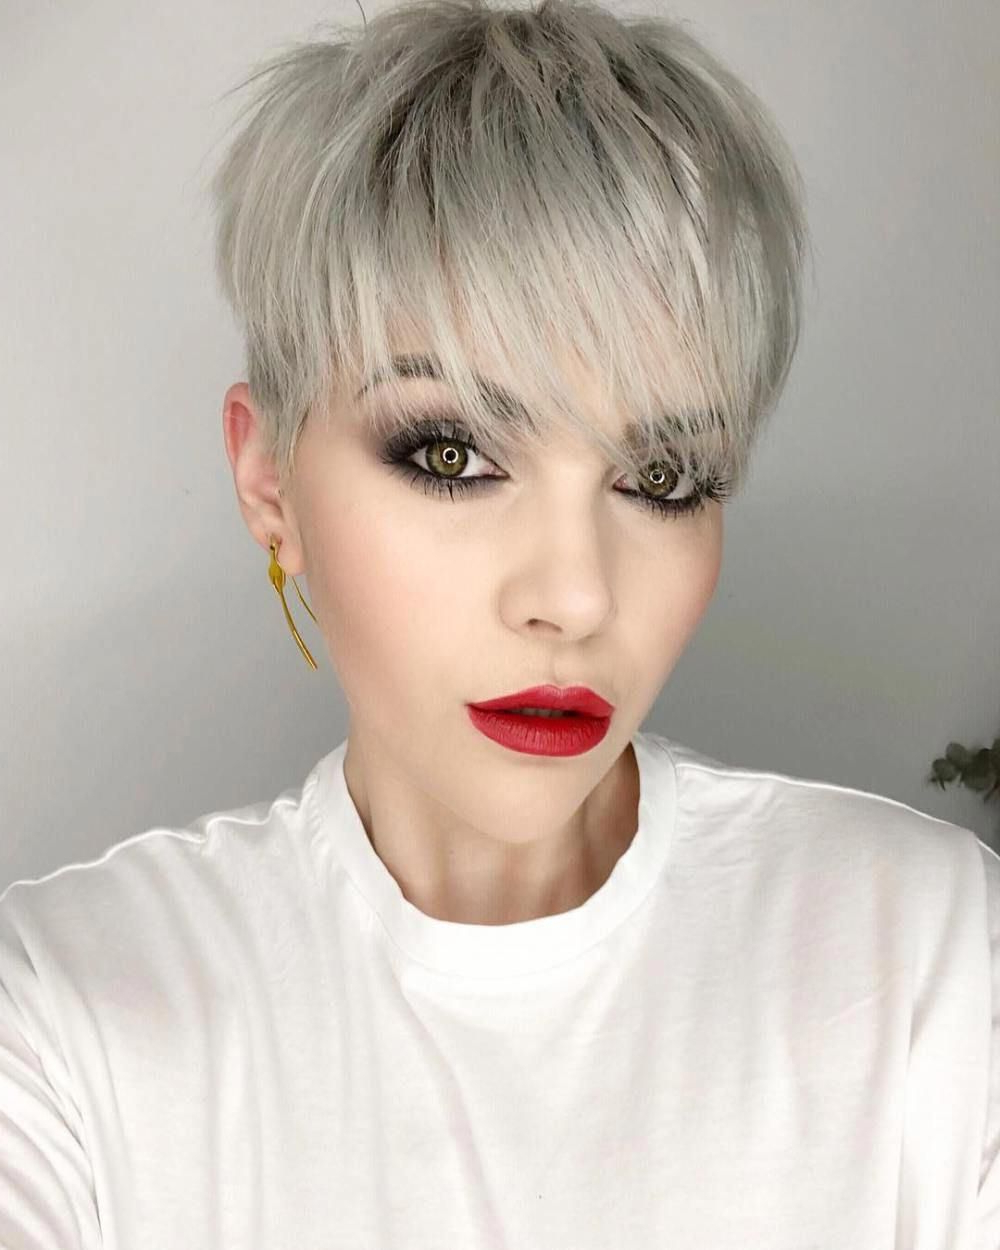 Pixie Haircuts With Bangs – 50 Terrific Tapers In 2019 With Blonde Pixie Haircuts With Curly Bangs (View 3 of 20)